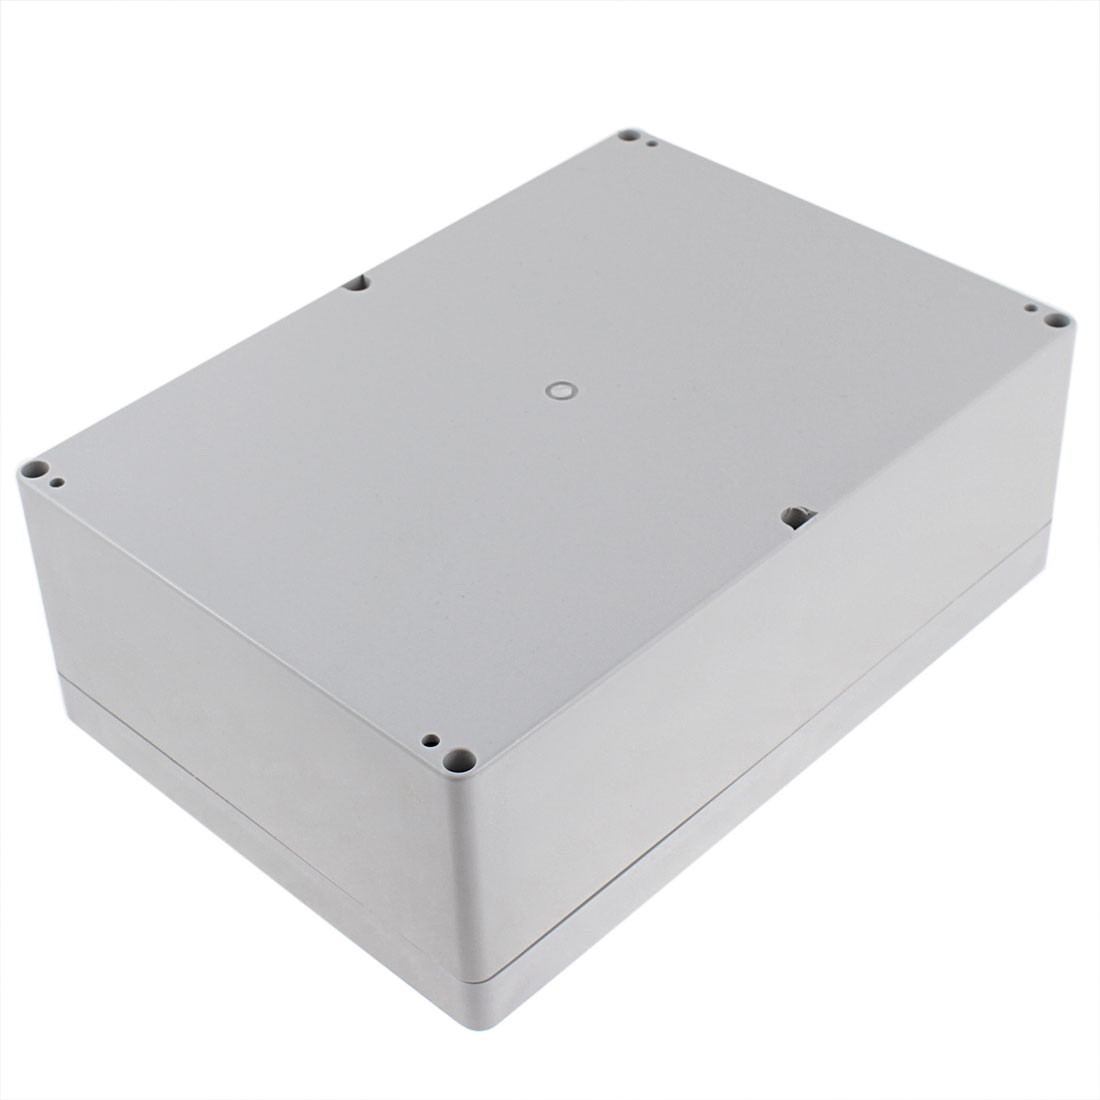 Plastic Electronic Junction Box Project Case 263 x 185 x 95mm Gray